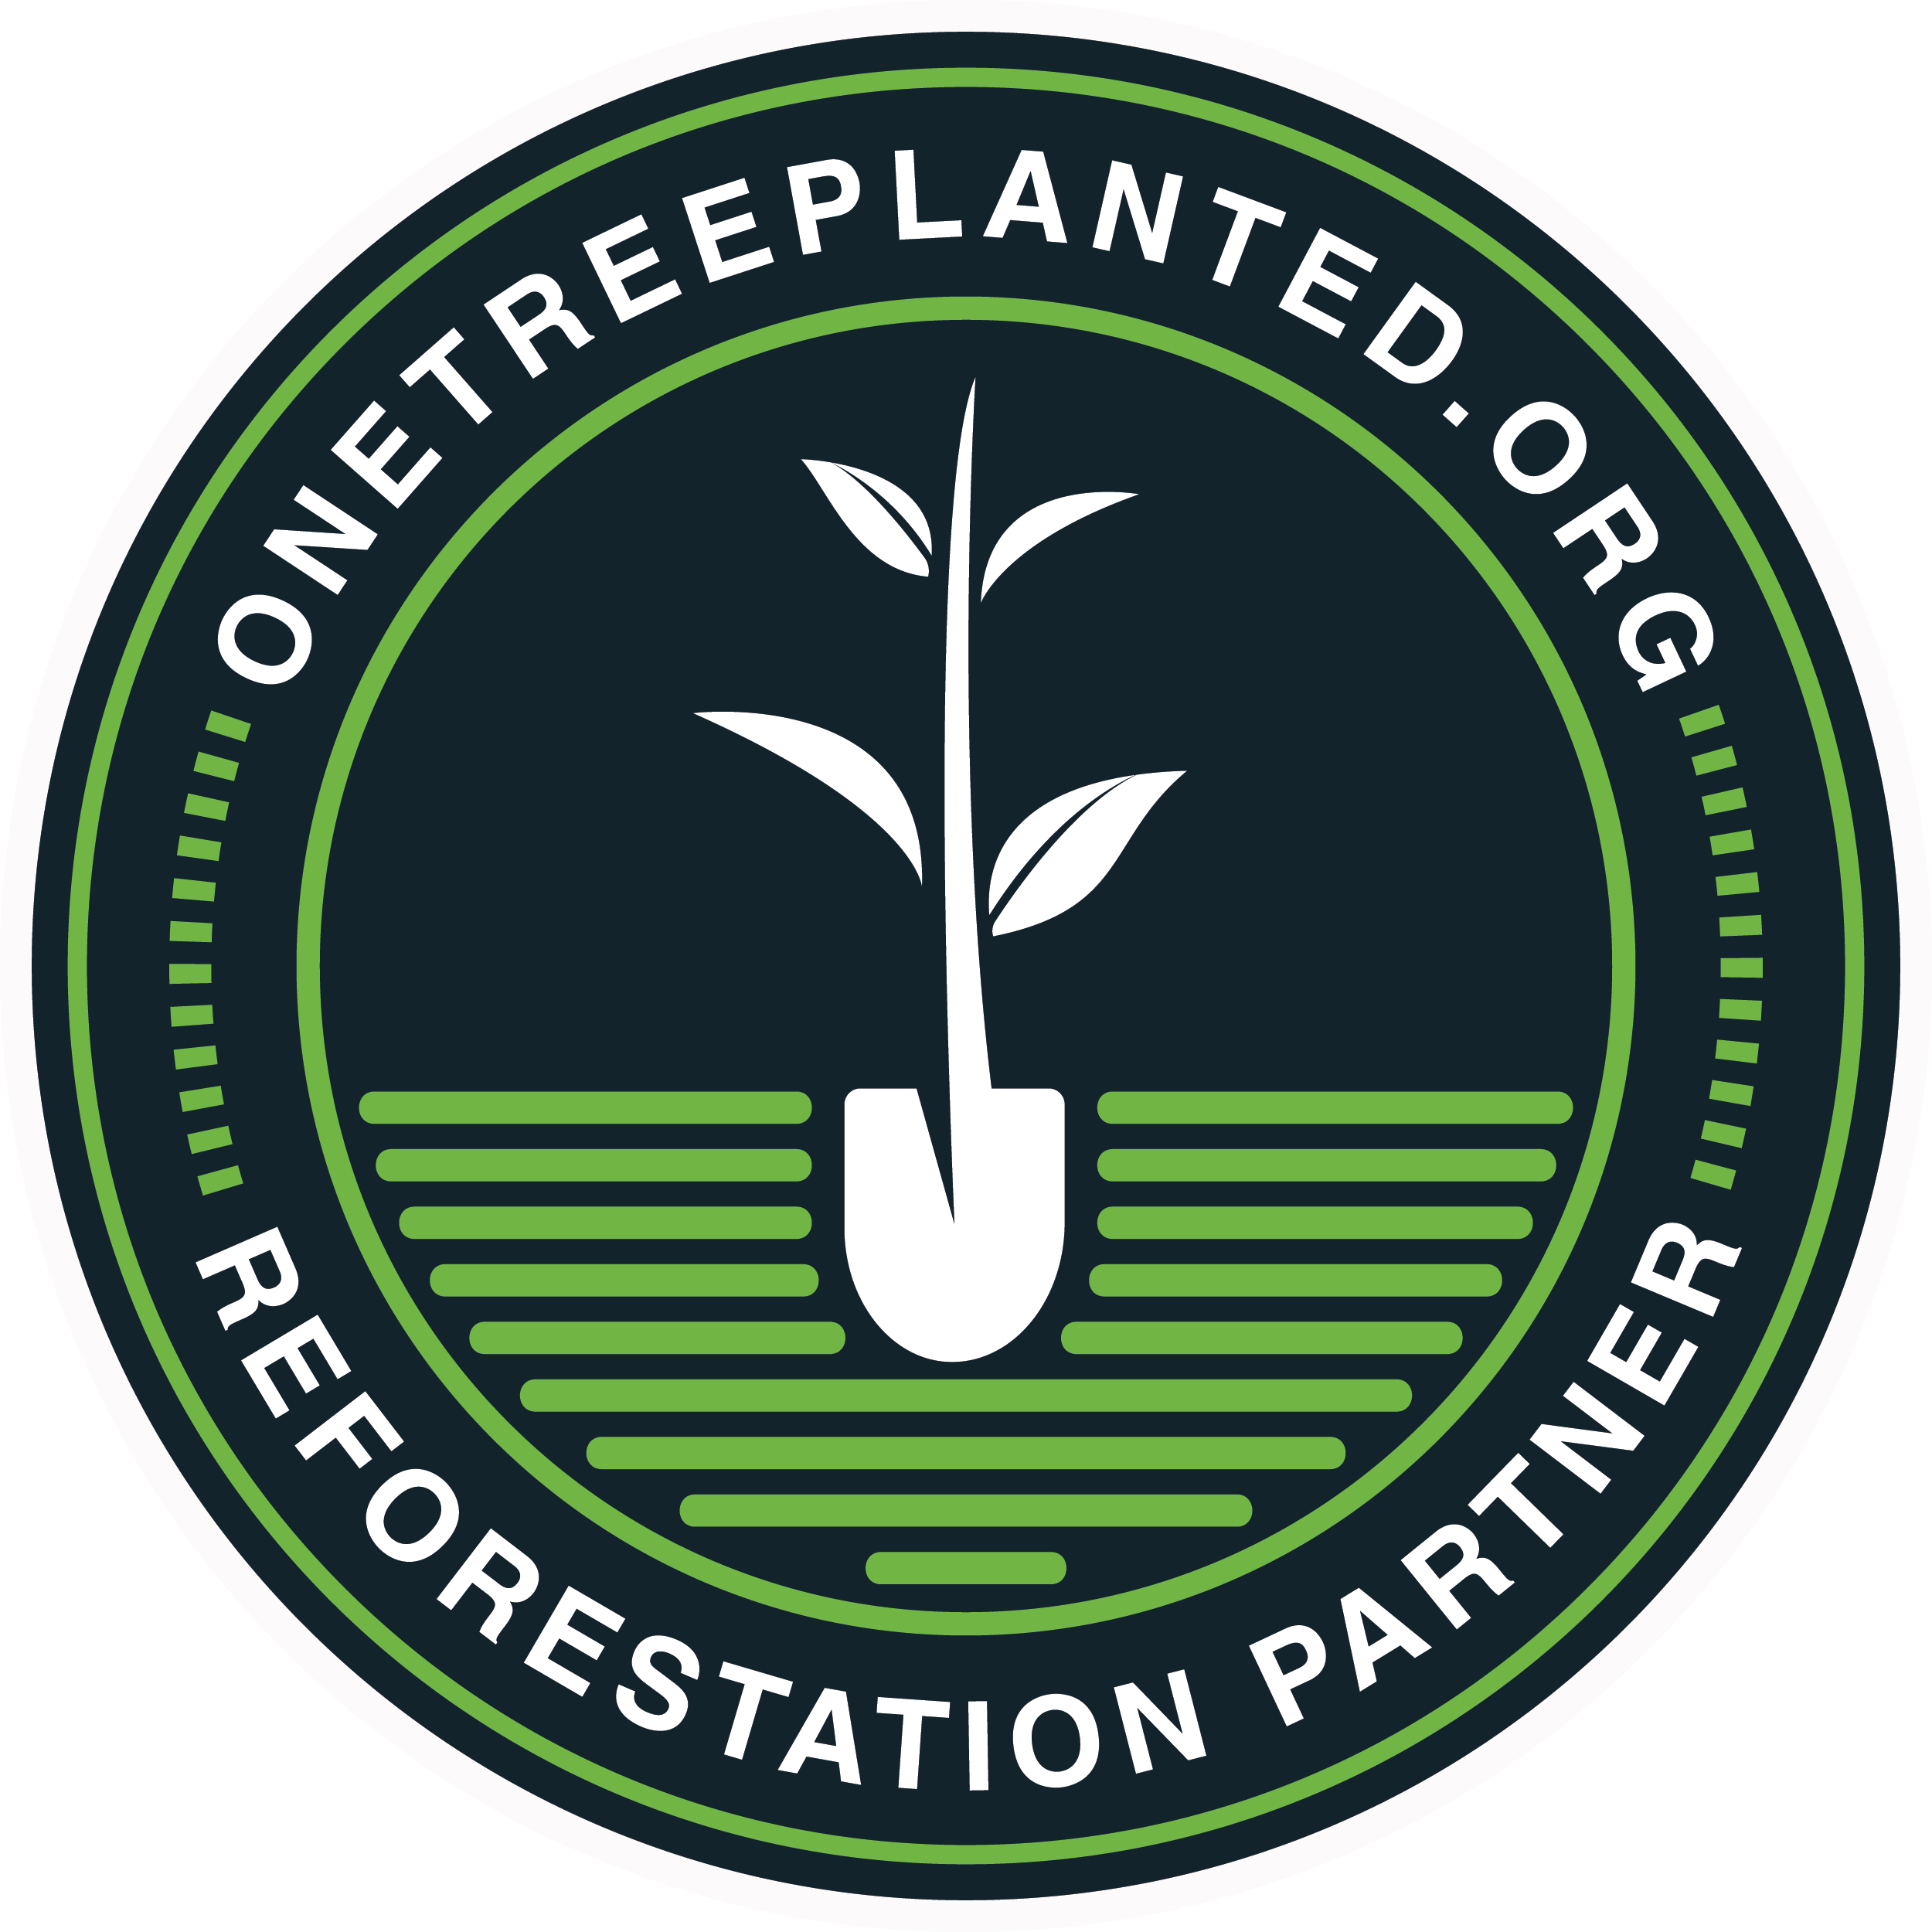 One Tree Planted Reforestation Partner | WastePlace